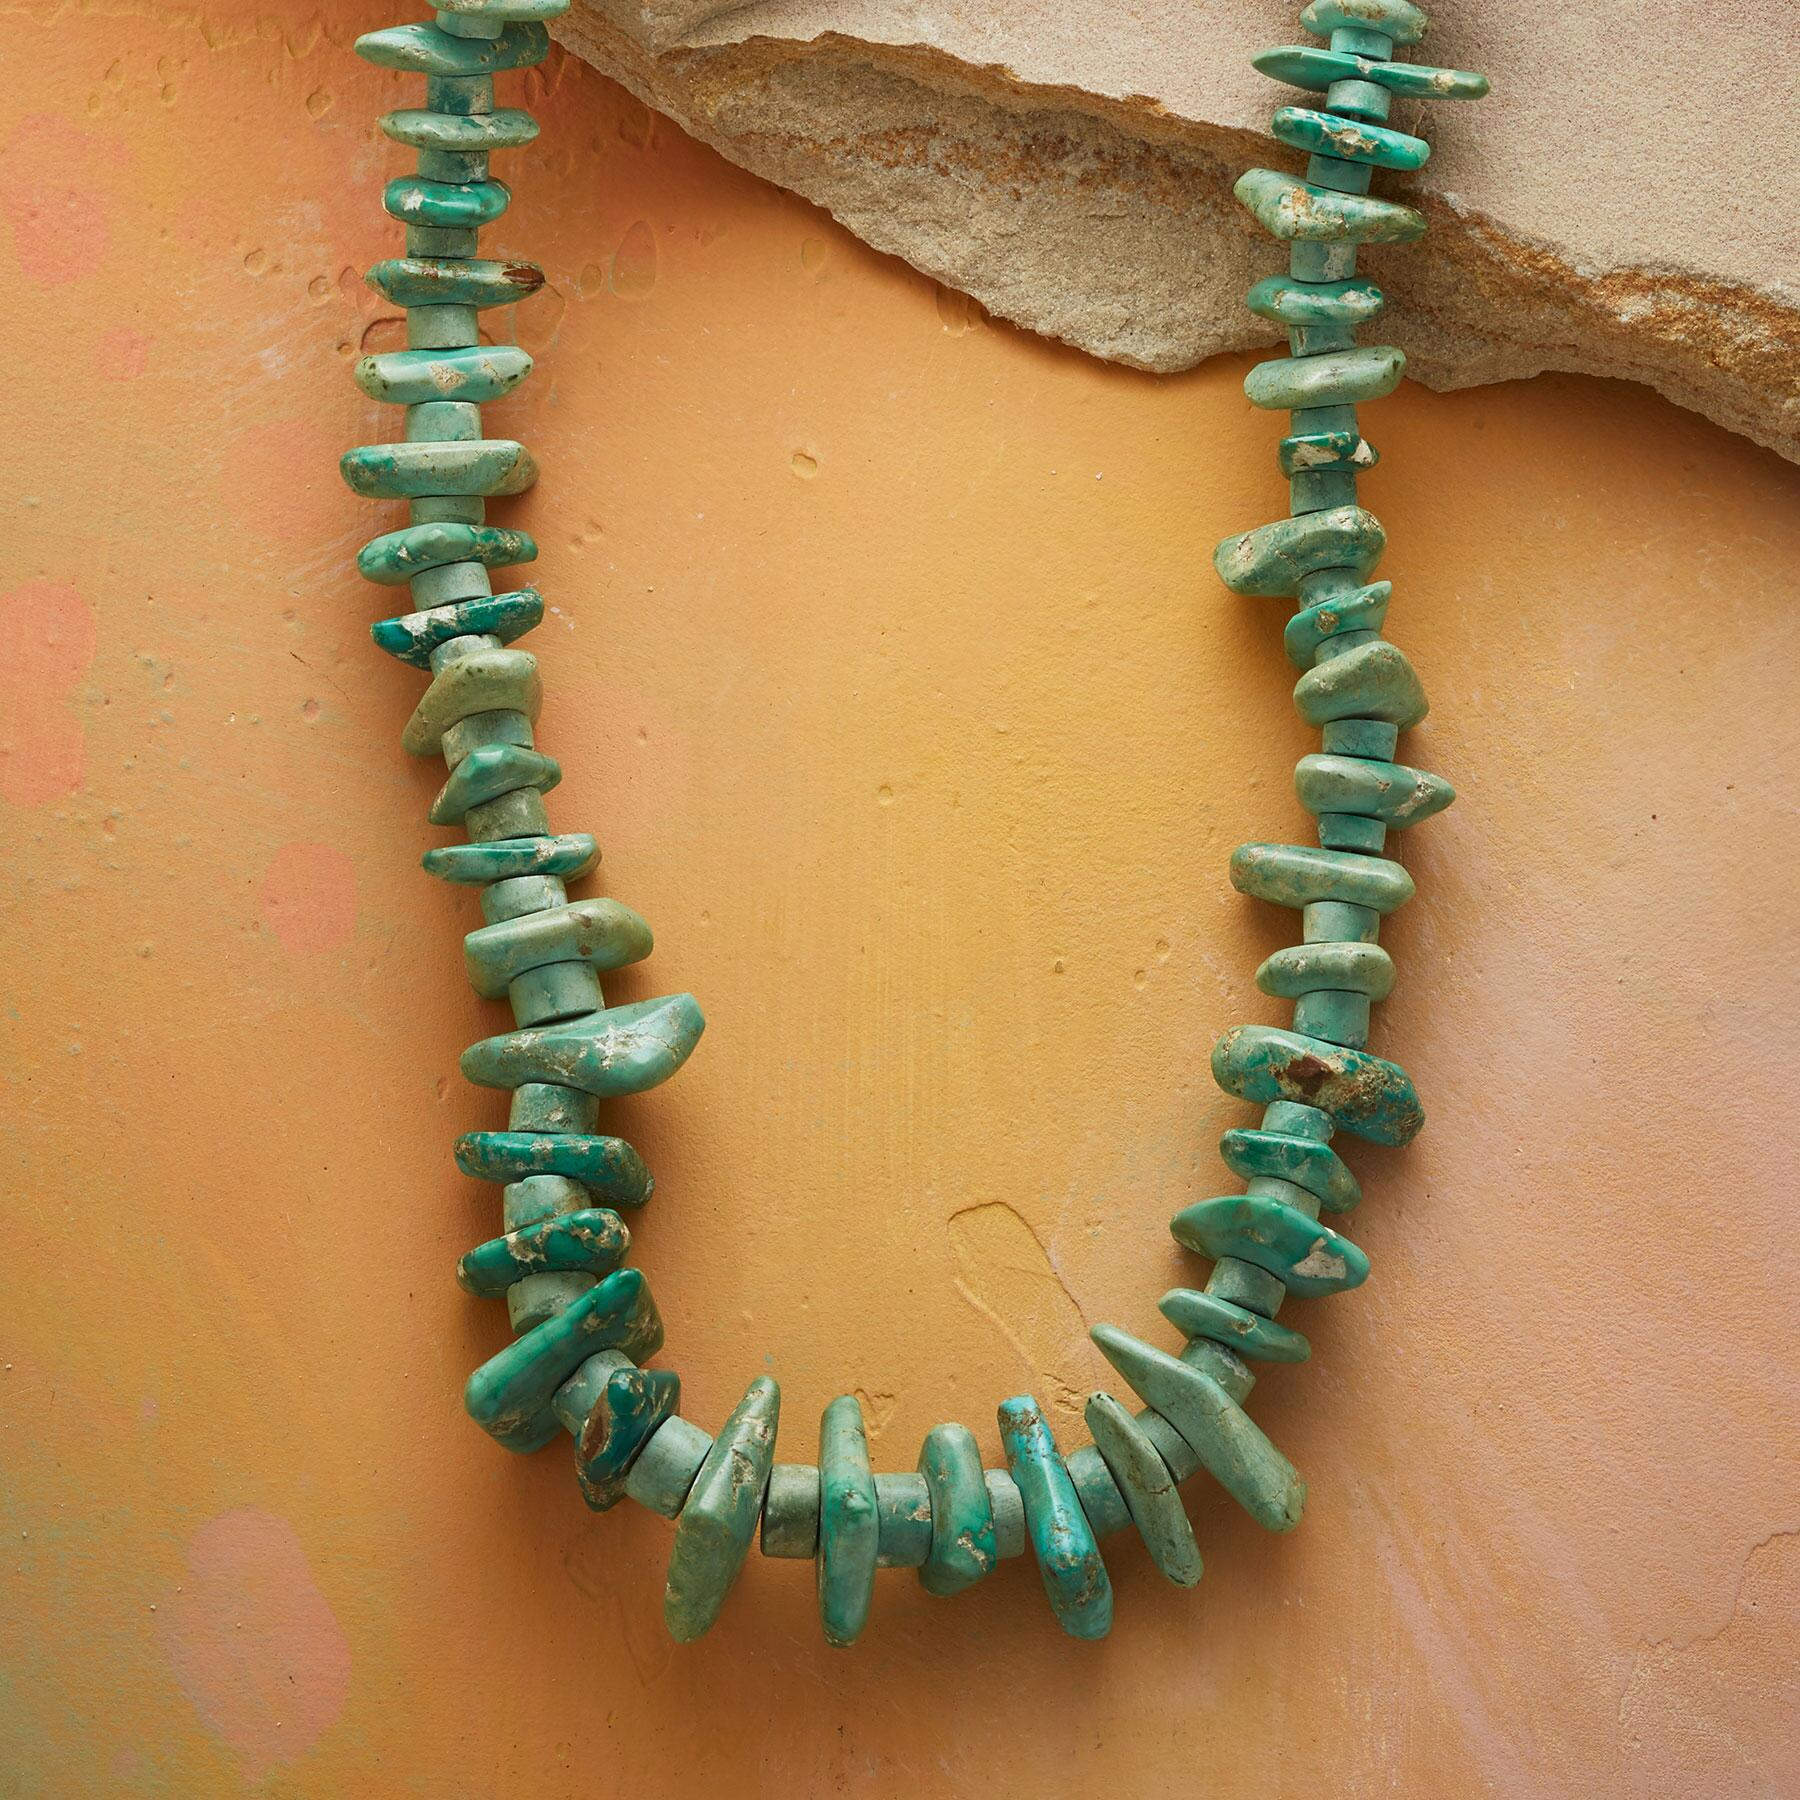 VINTAGE SANTO DOMINGO PUEBLO NECKLACE: View 1